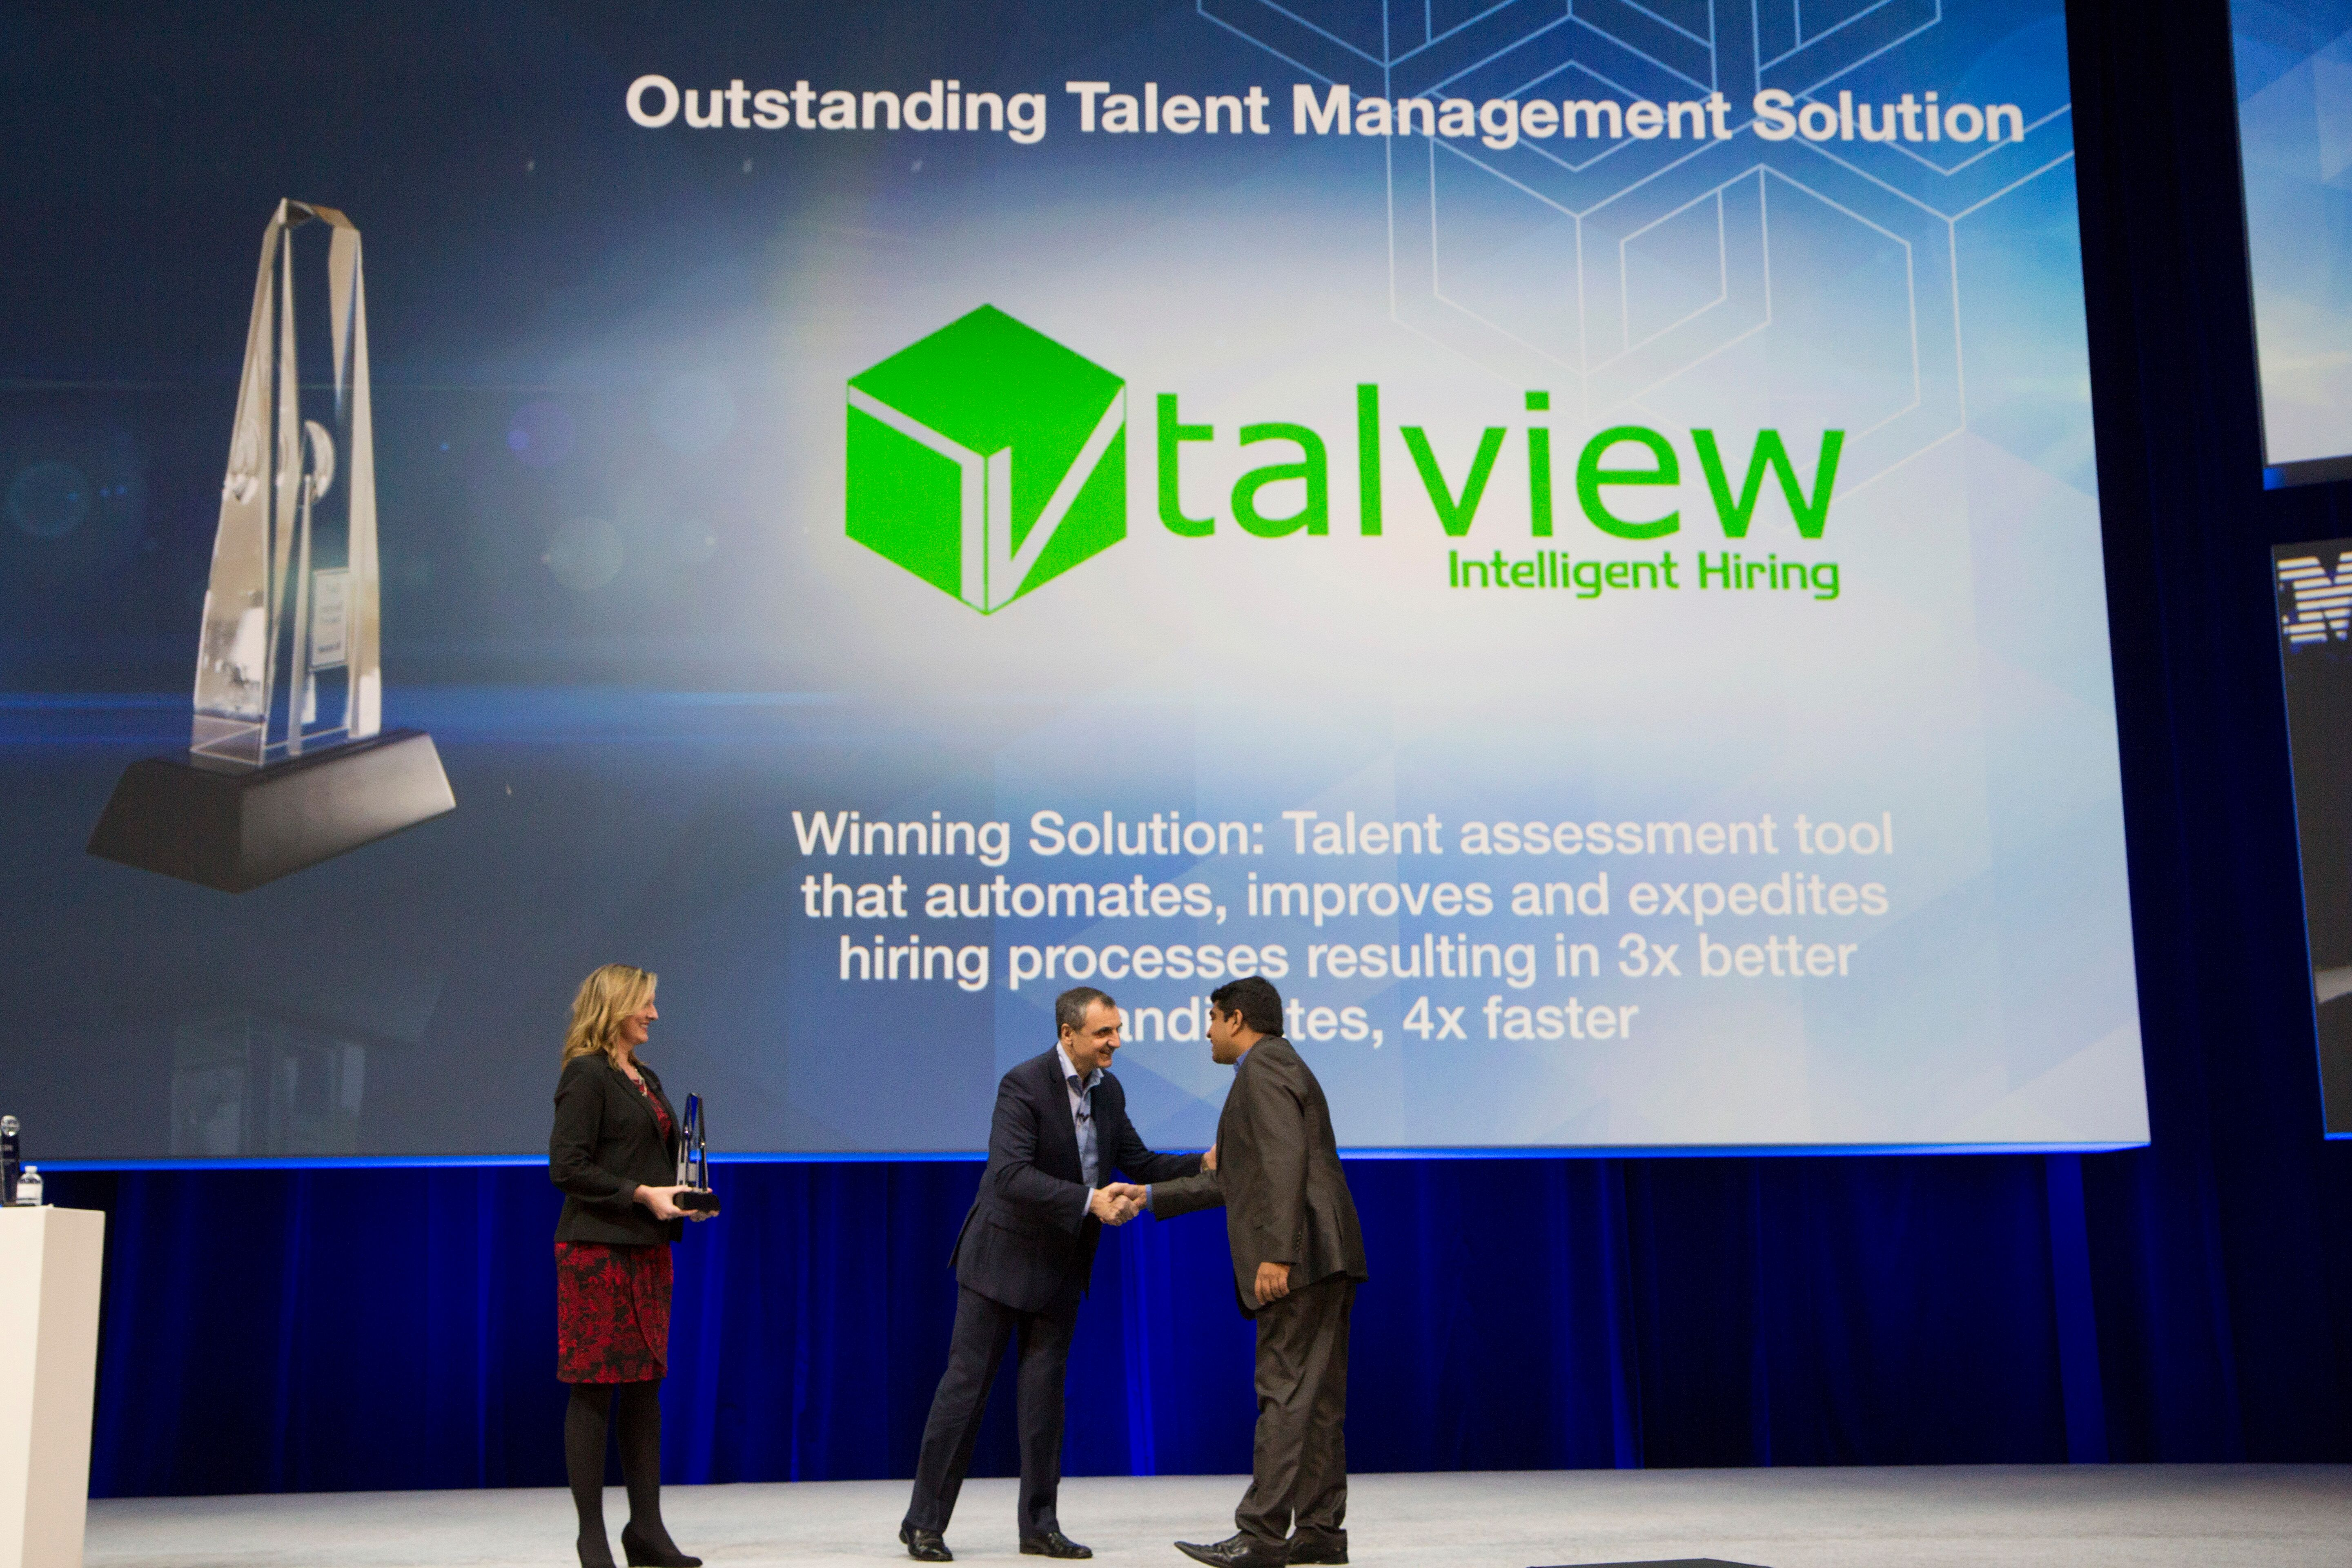 talview wins ibm beacon award for talent management solution